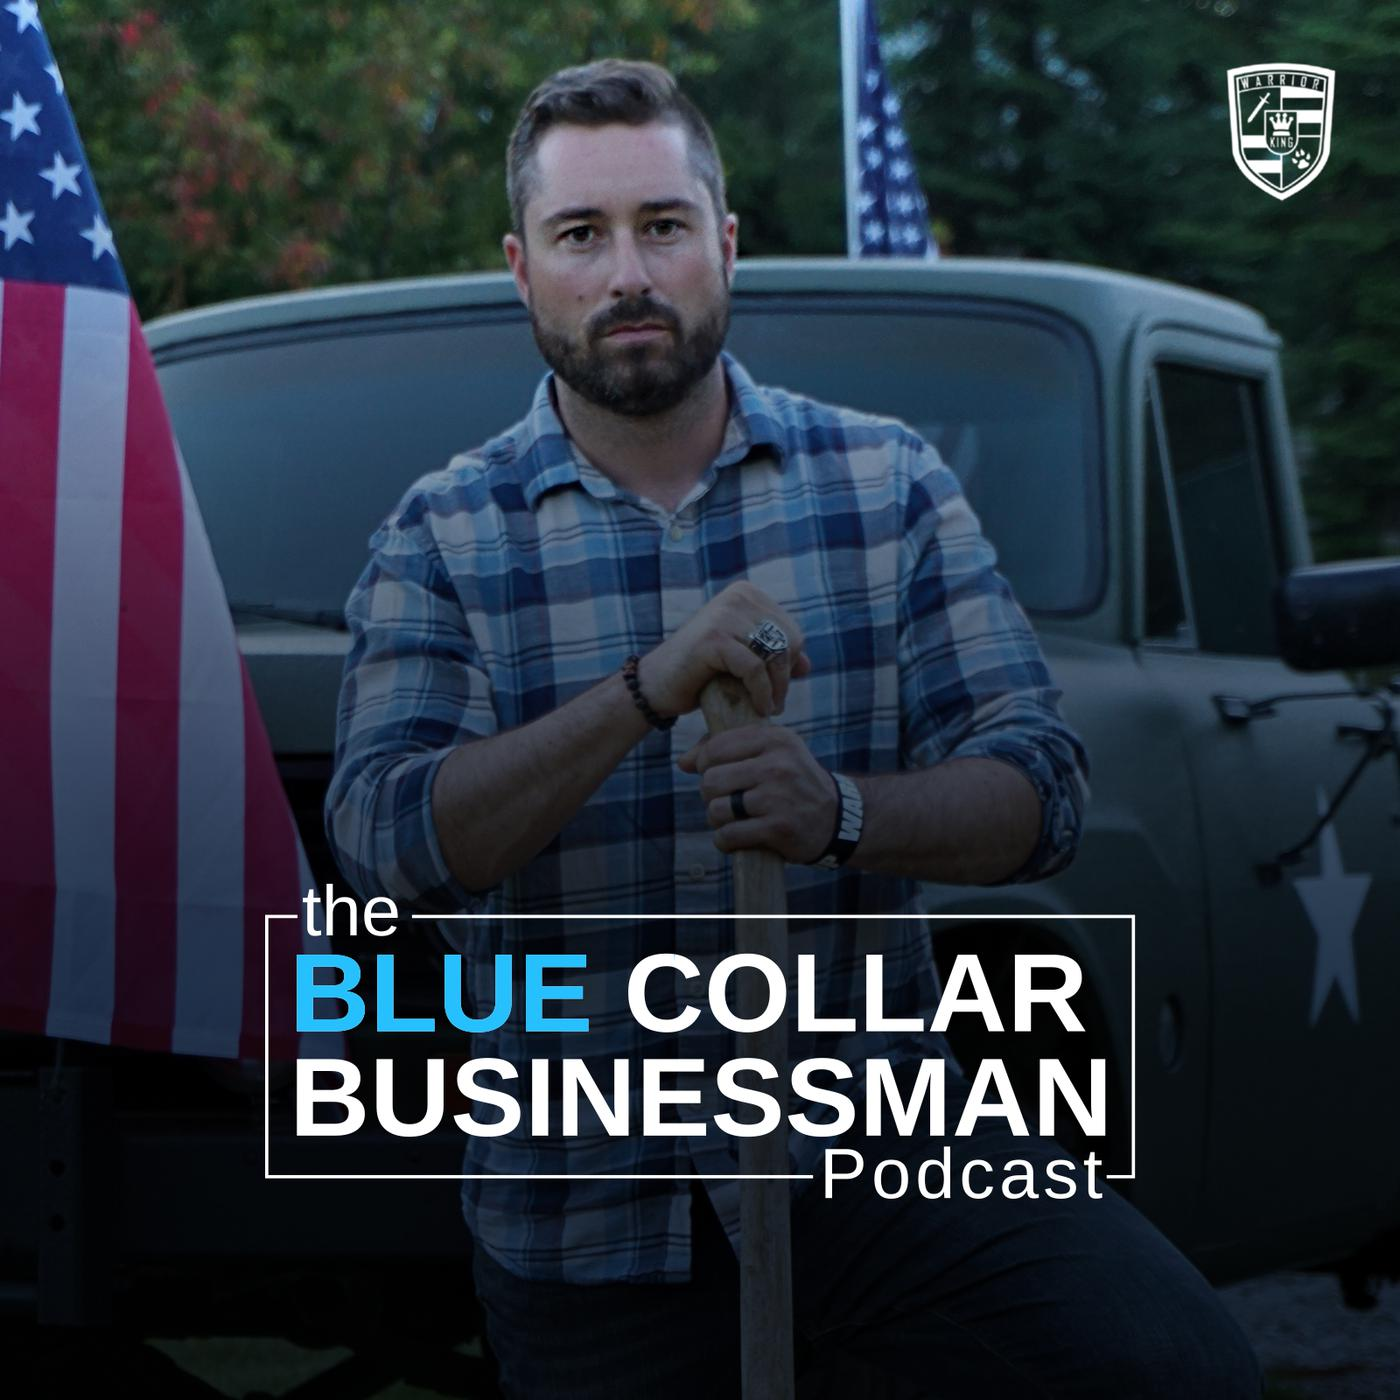 The Blue Collar Businessman